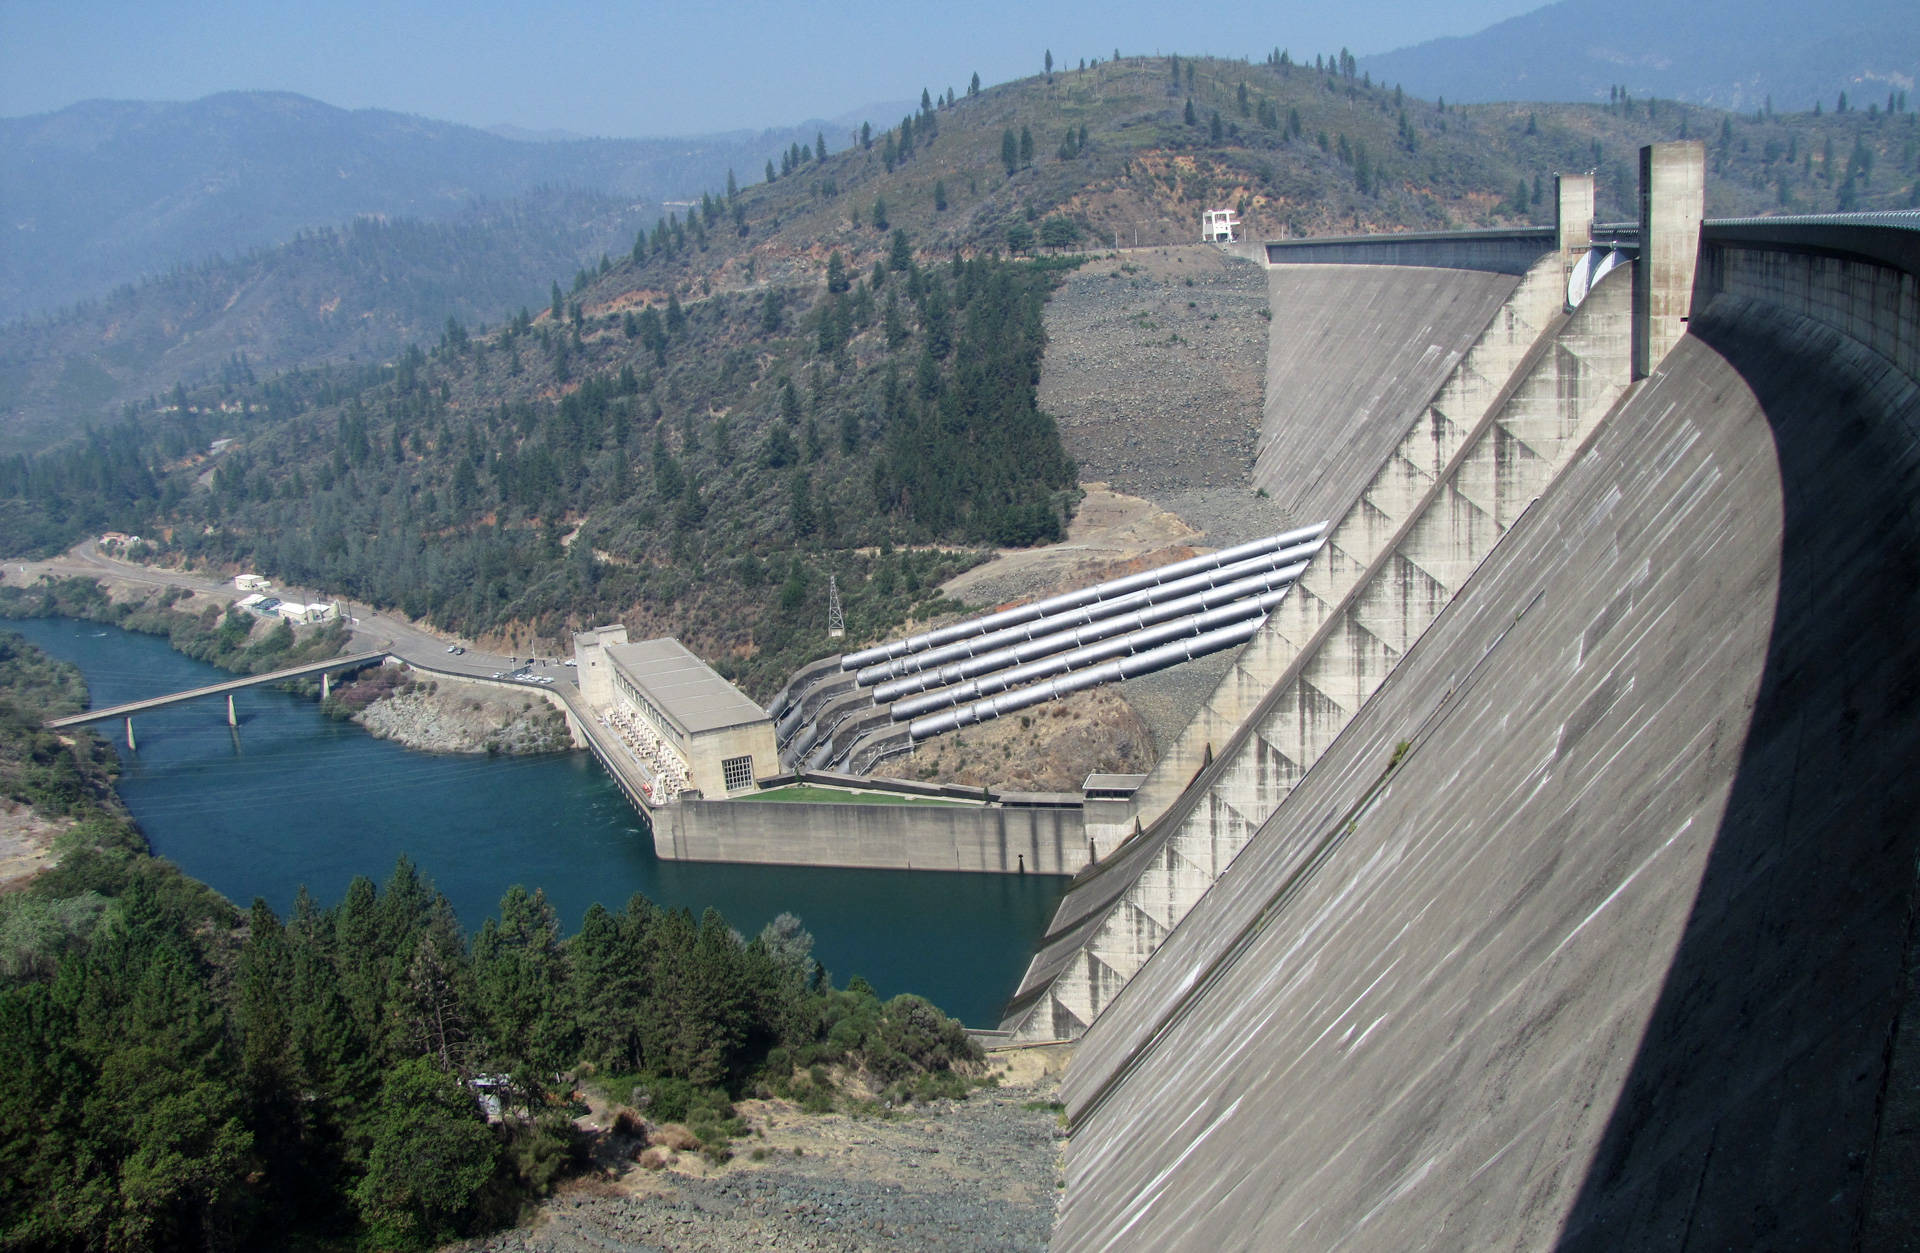 Shasta Dam is the keystone of California's federally operated Central Valley Project. It provides water, flood control and hydroelectric power. Craig Miller/KQED